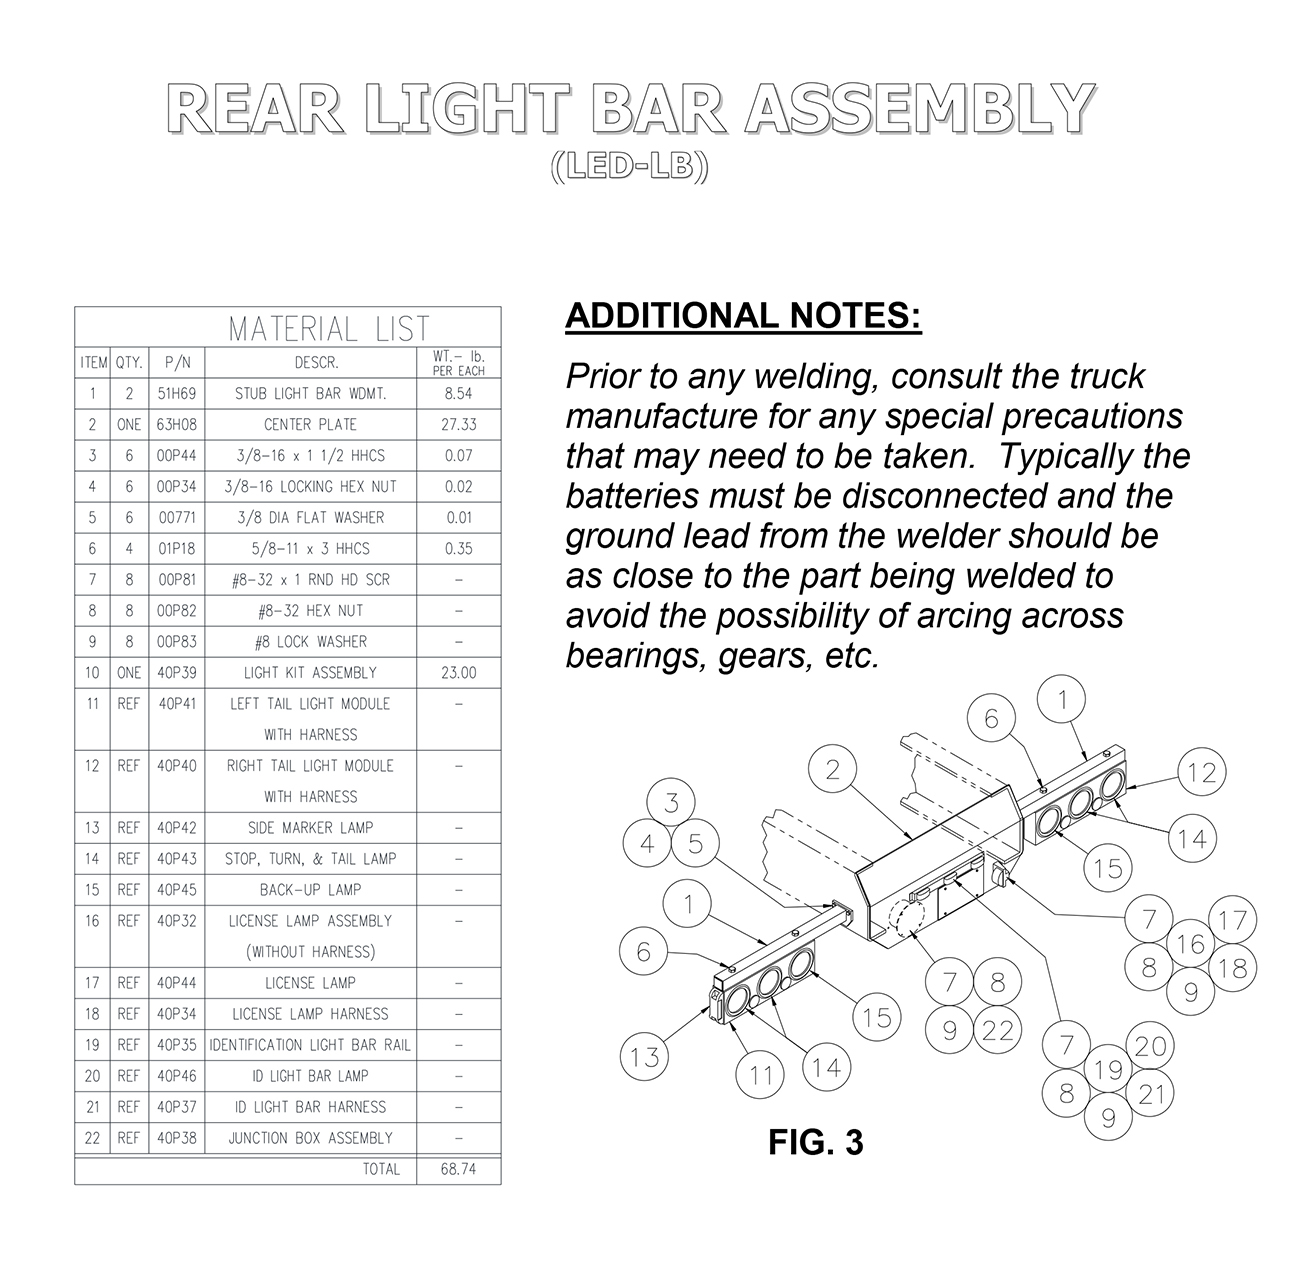 LED-LB Rear Light Bar Assembly Diagram